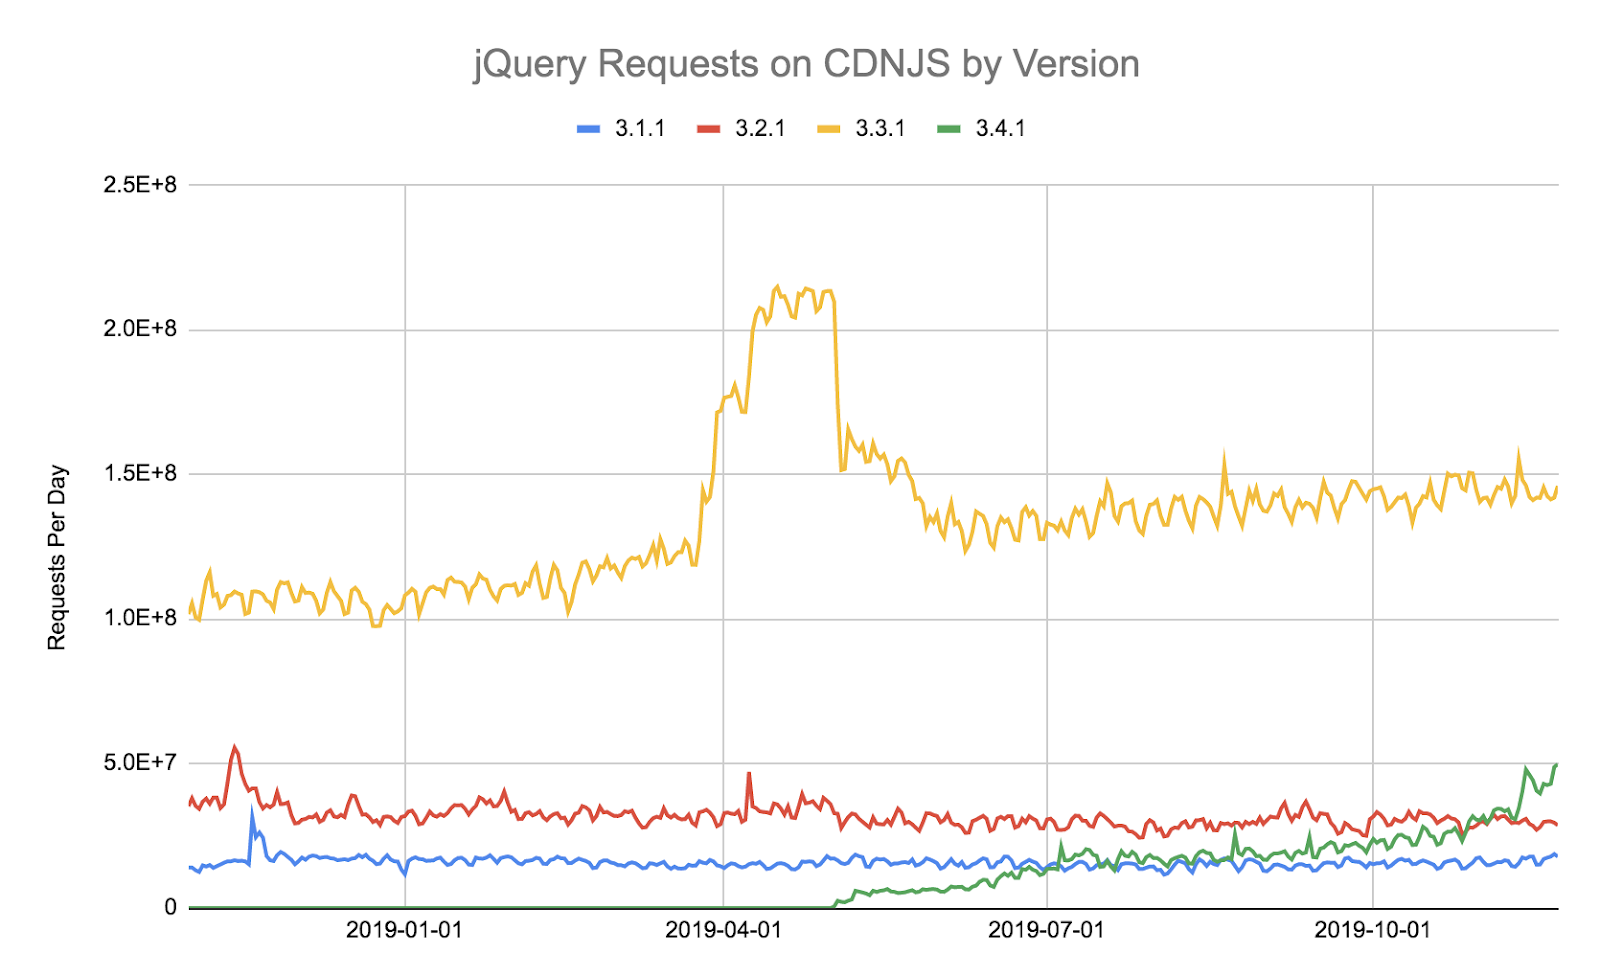 JavaScript Libraries Are Almost Never Updated Once Installed